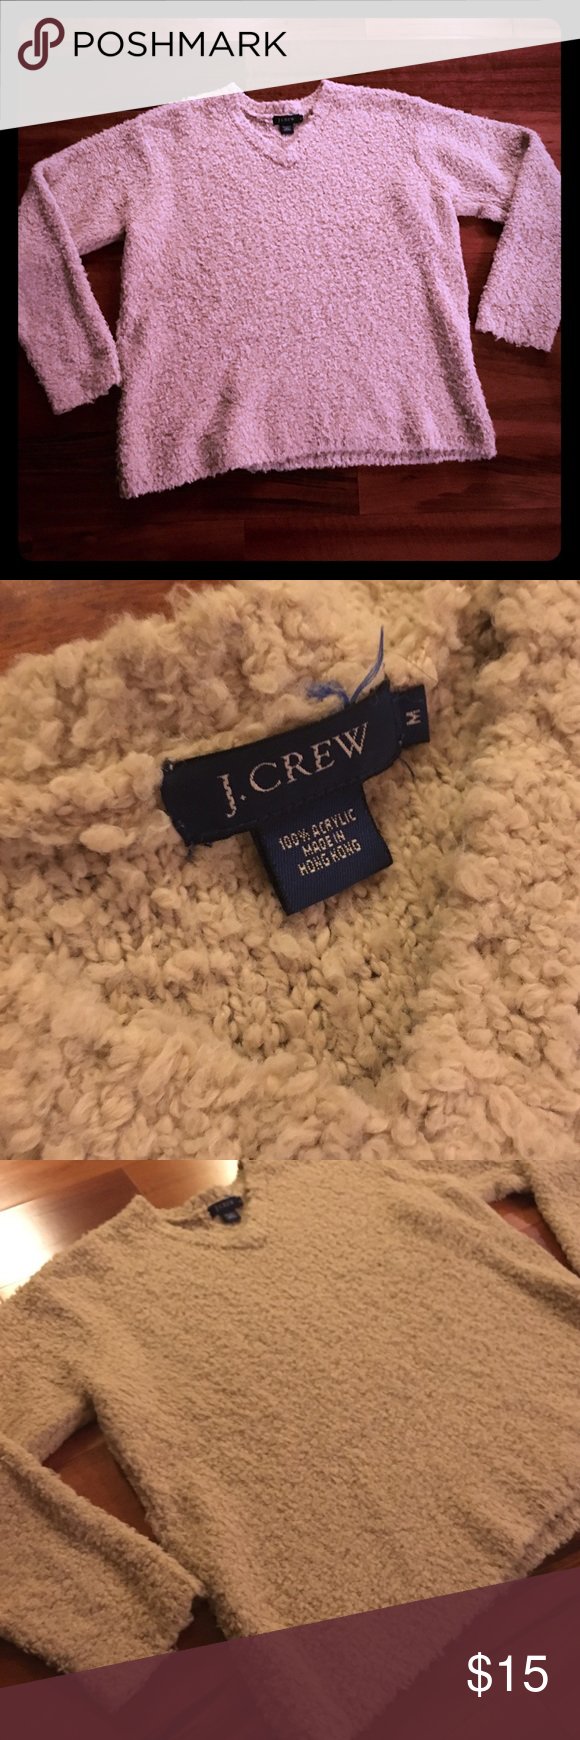 J. Crew sweater Cute oatmeal color v-neck J. Crew sweater. Great condition. J. Crew Sweaters V-Necks